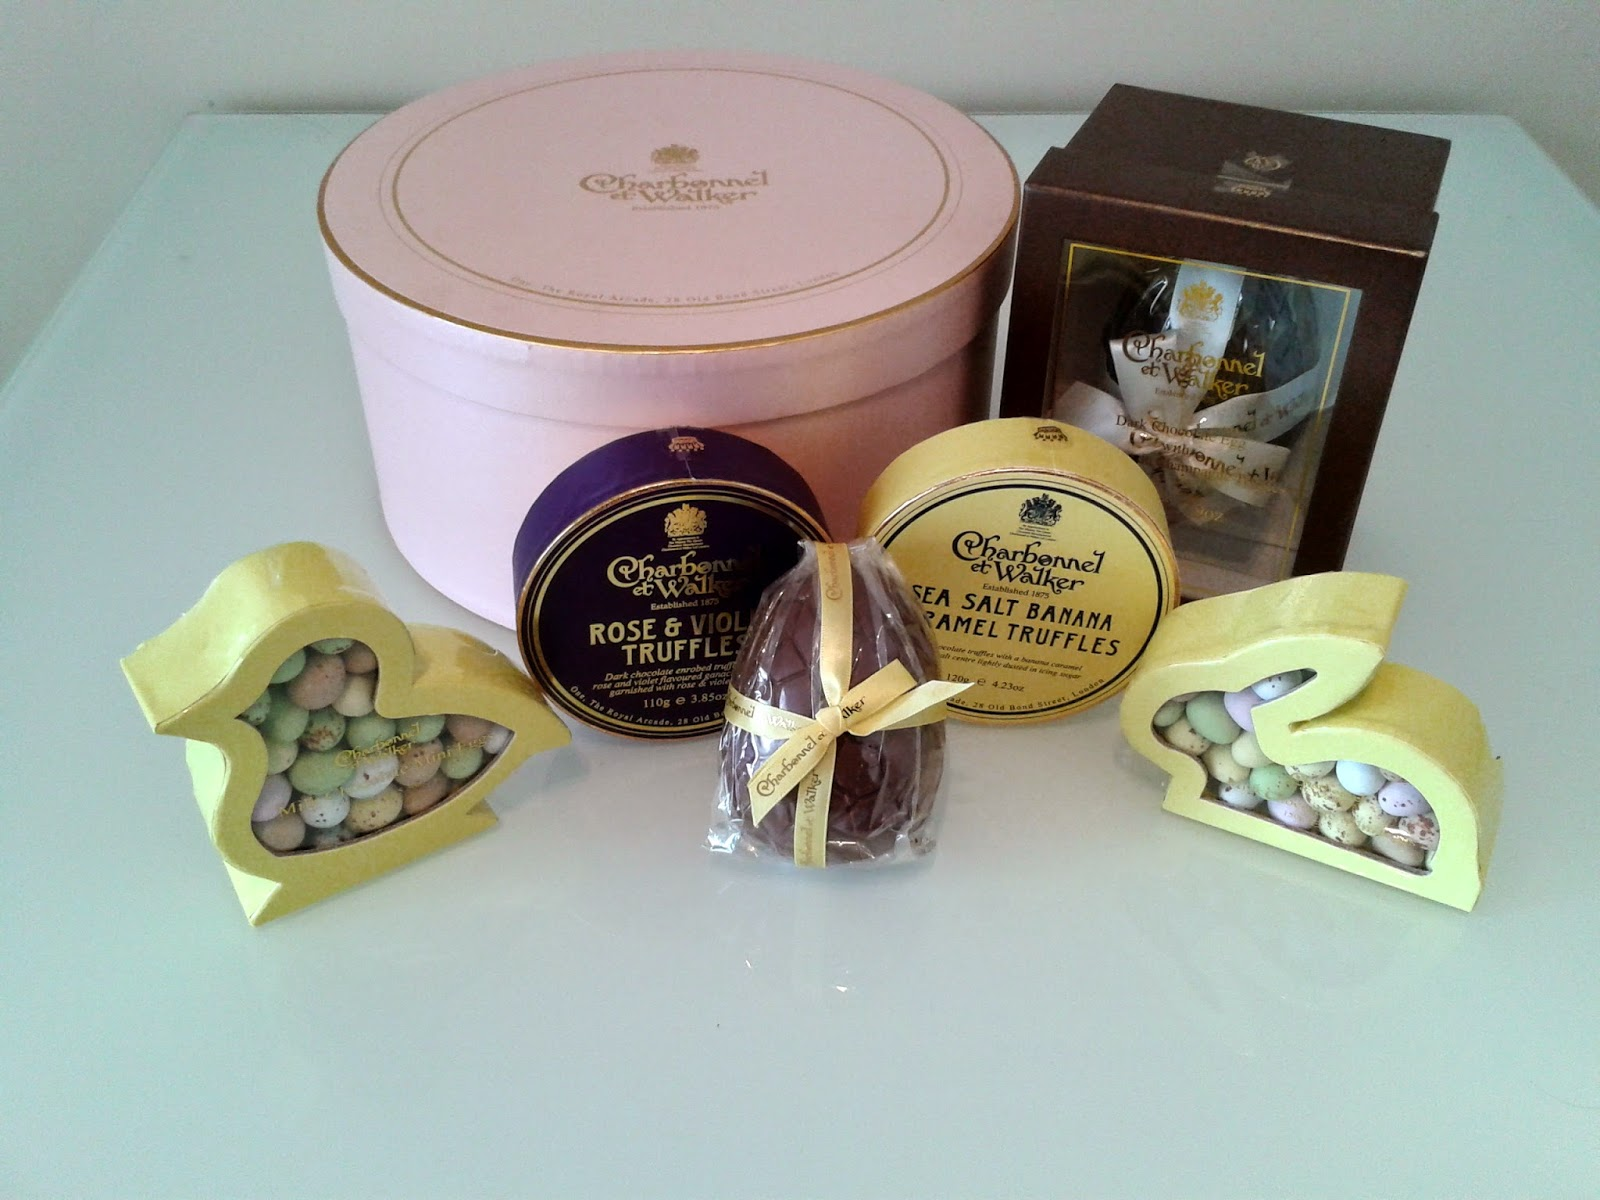 Easter Eggs, Charbonnel et Walker, Handmade Chocolates, Chocolatier, Champagne Truffles